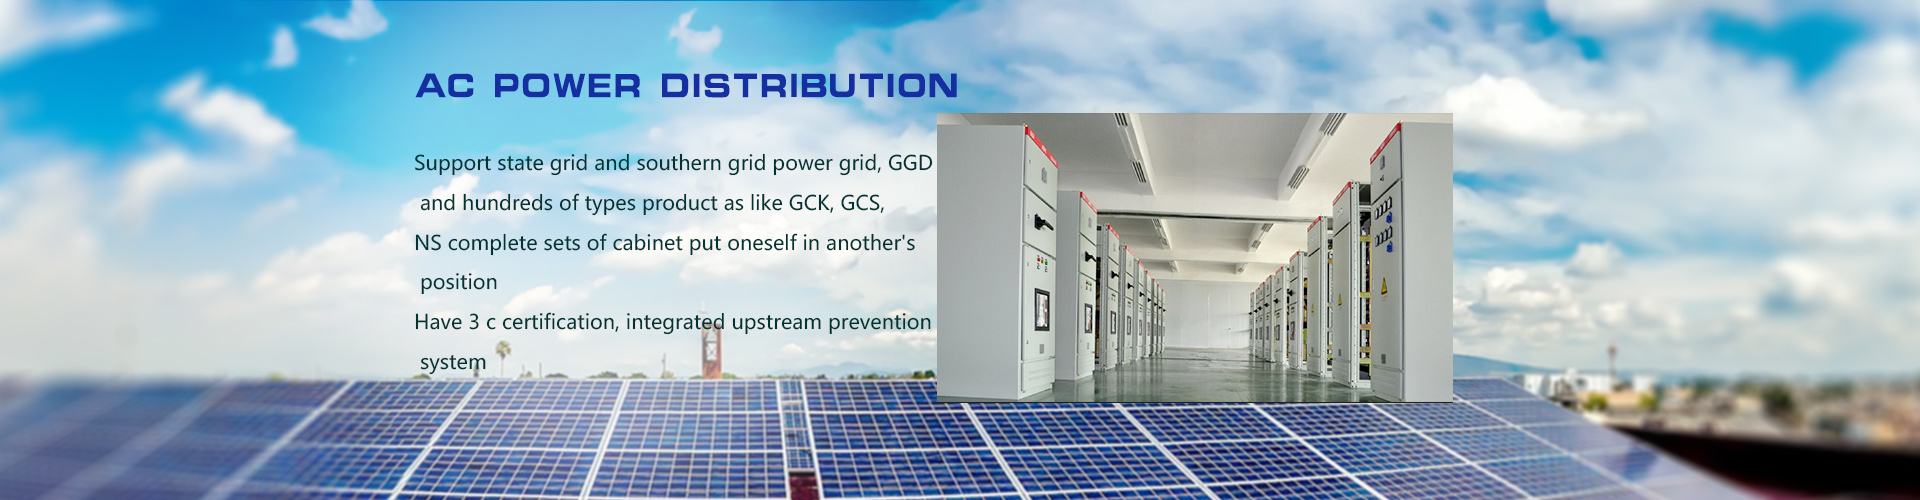 AC power distribution cabinet